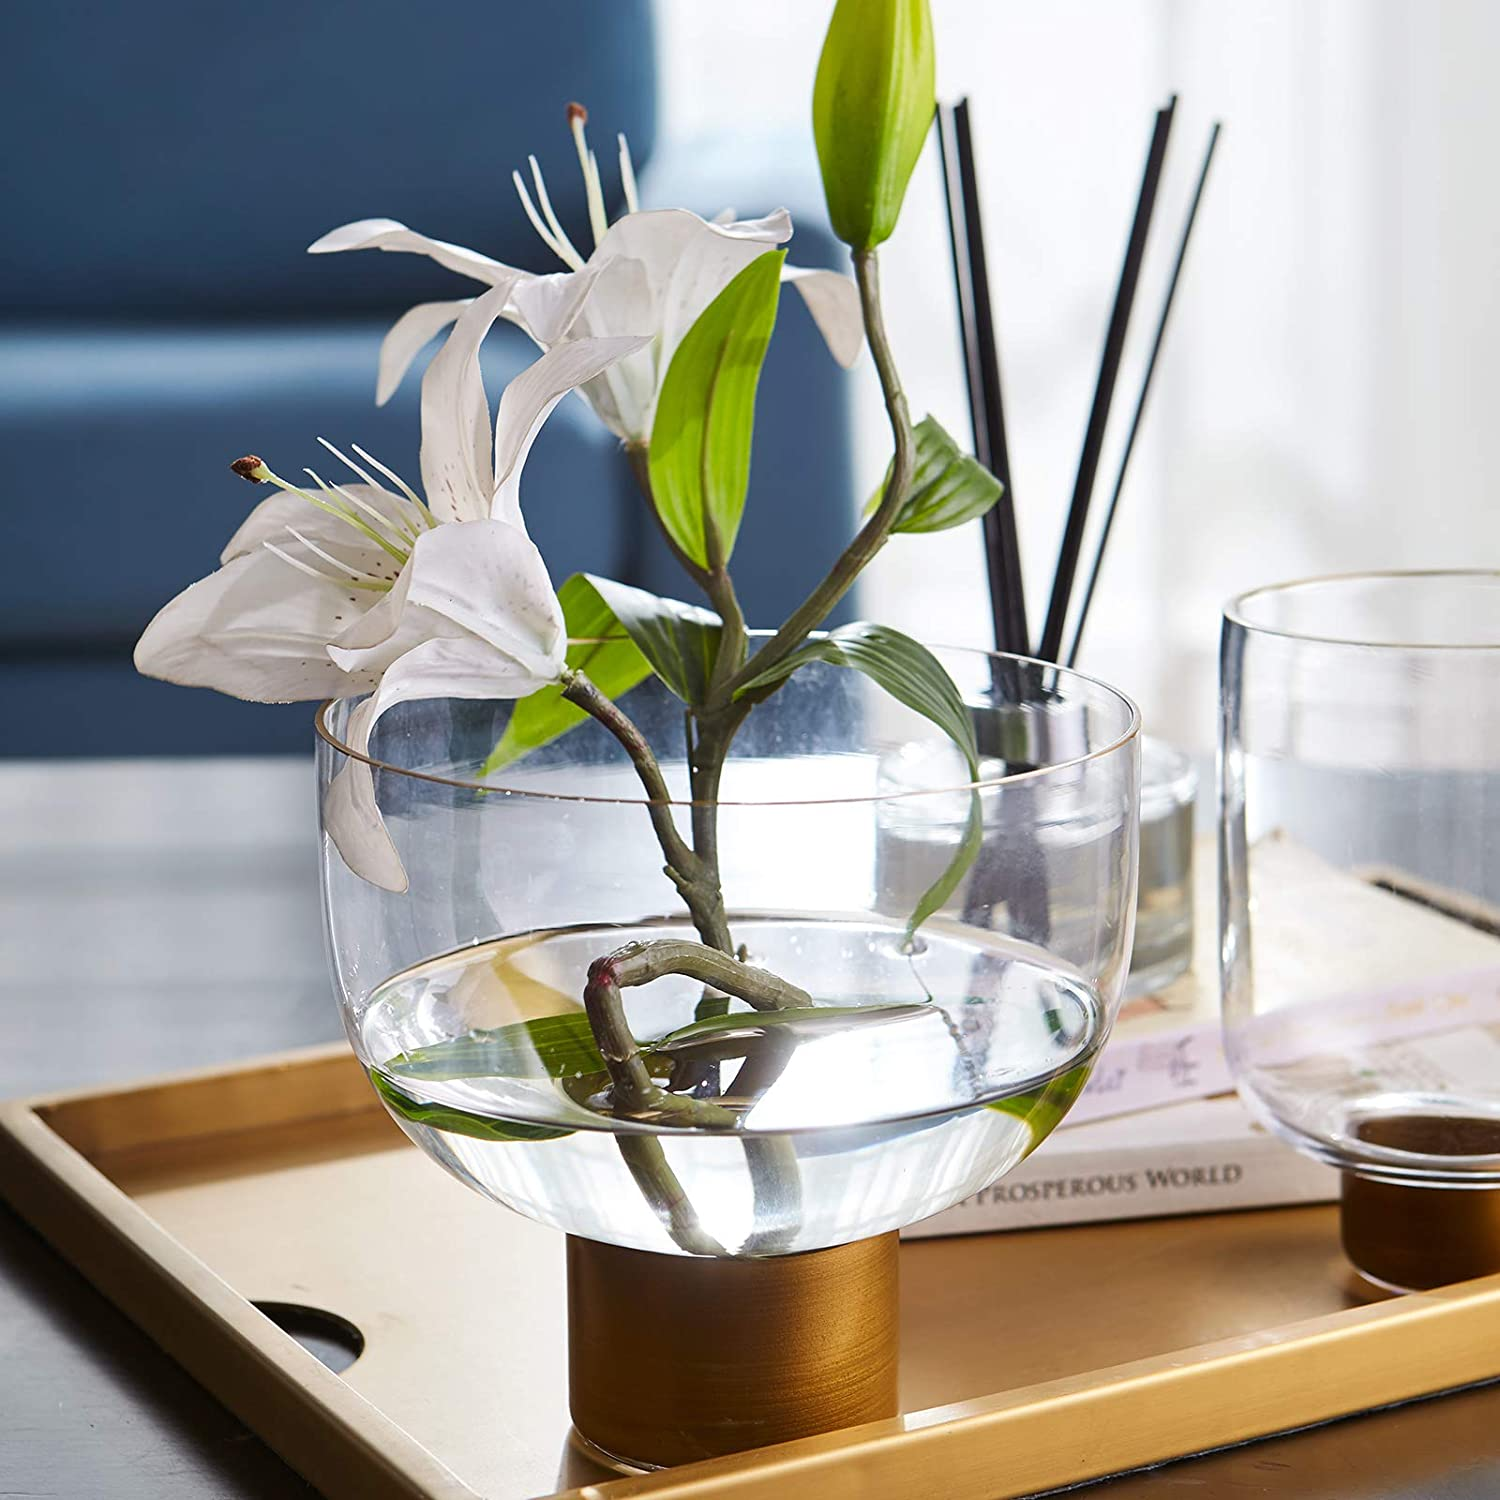 Cyl Home Vases Clear Glass Flower Arrangement Vase with Brass Stand Decor Bowl Hurricane Candleholder Table Centerpieces for Dining Living Room Wedding Gift, 6.1'' H x 2.8'' D